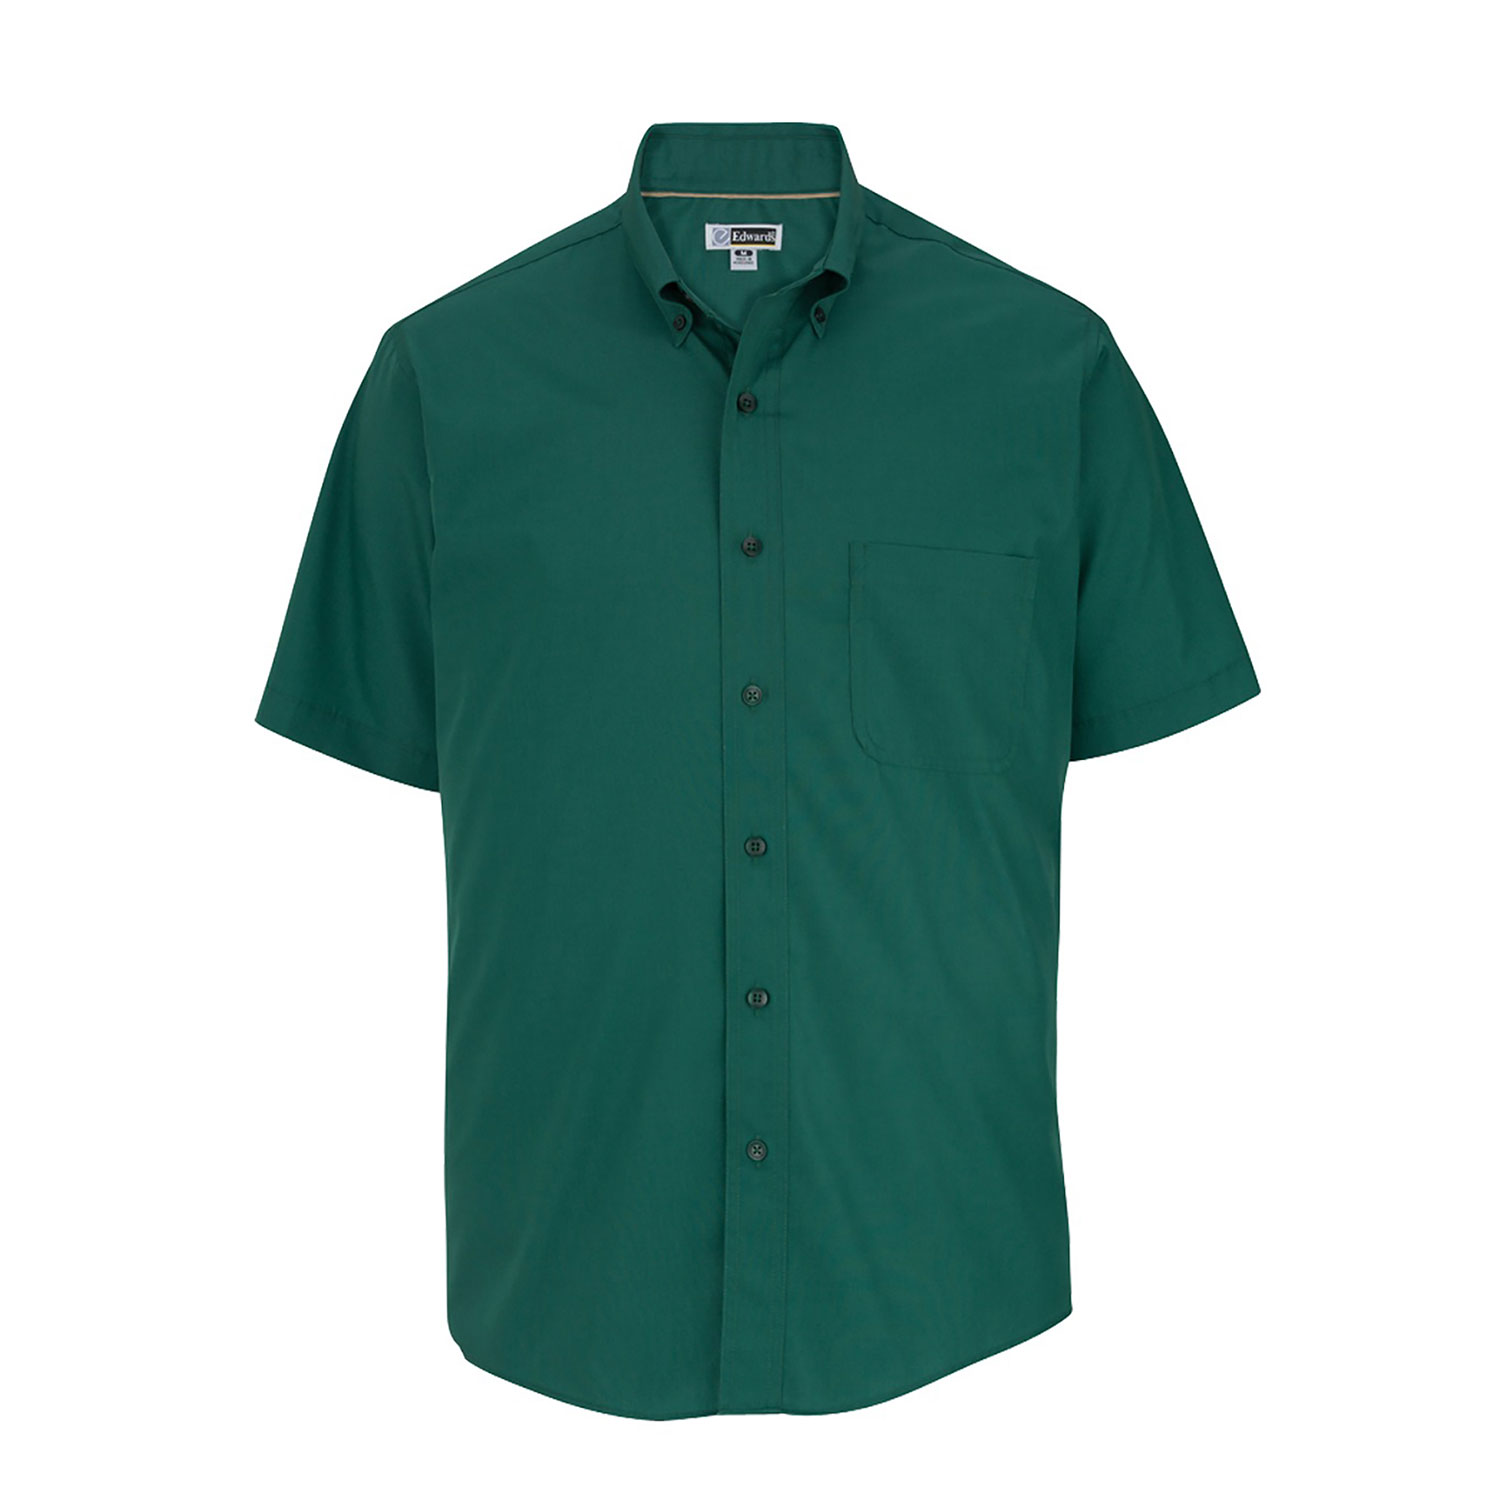 Edwards Poplin Short Sleeve Shirt